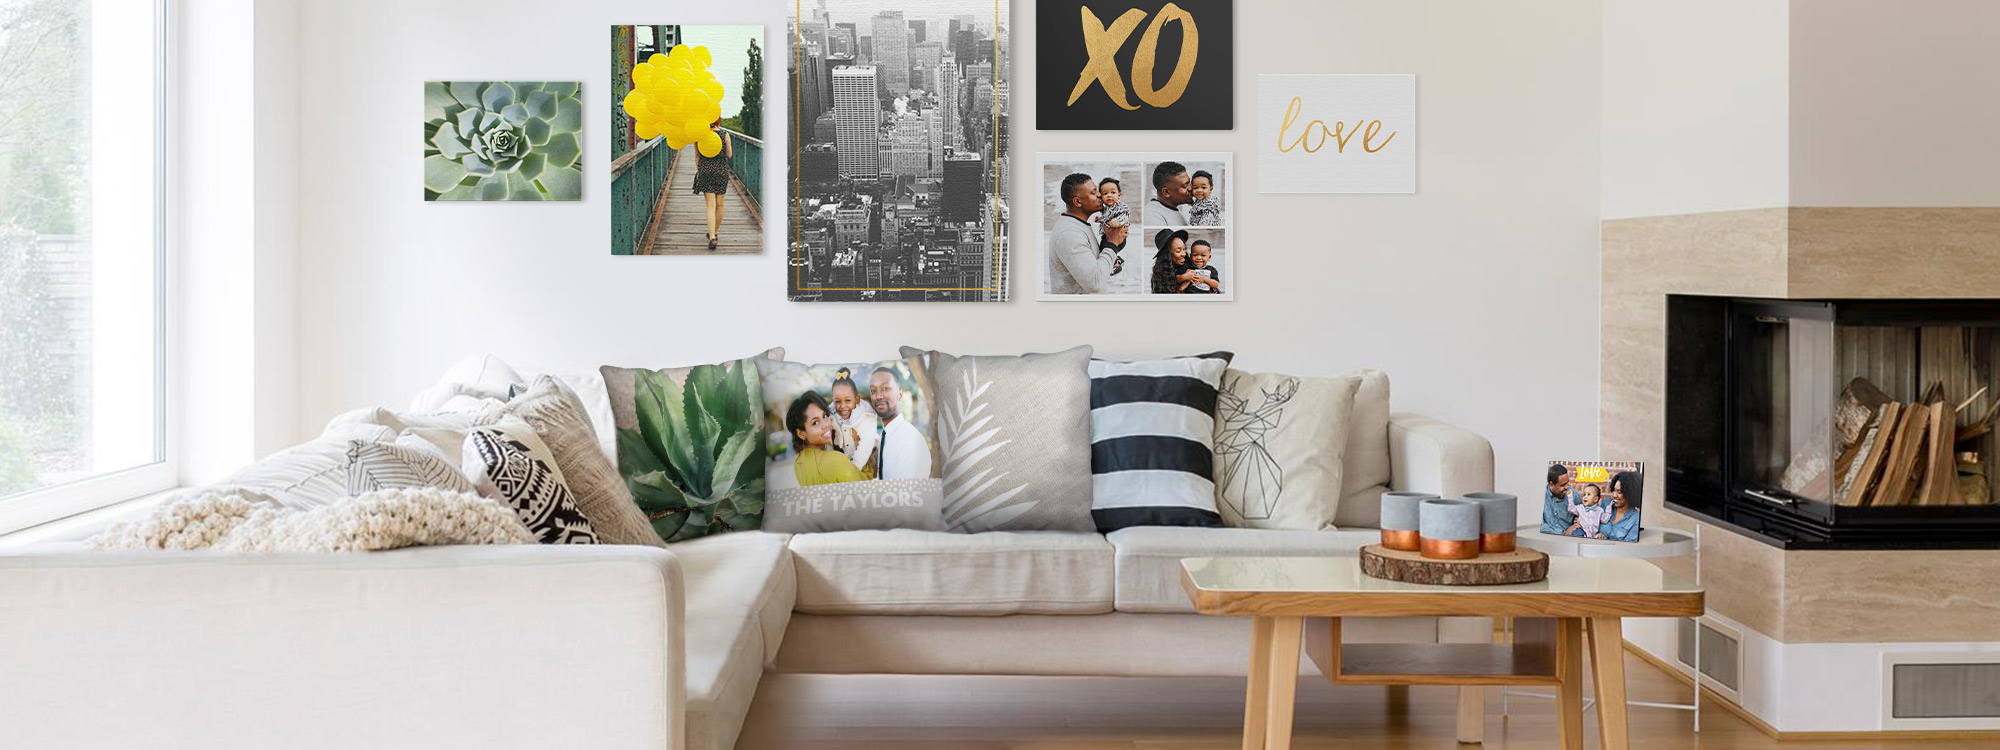 Home Décor Ideas Beautifully Display Your Photos Throughout